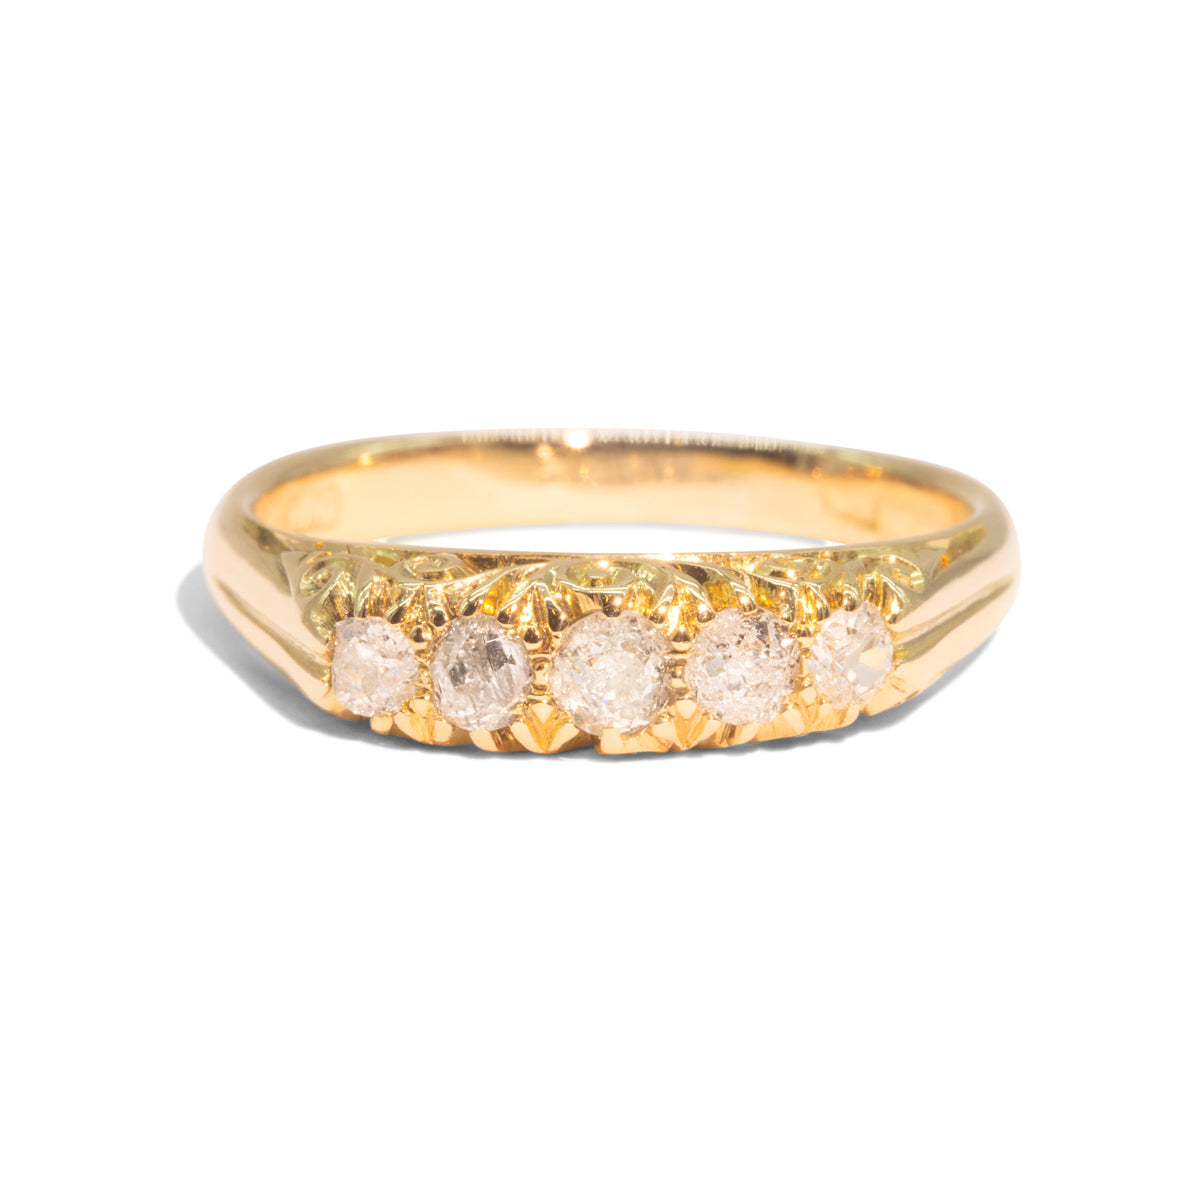 The Jemima Vintage Diamond Ring